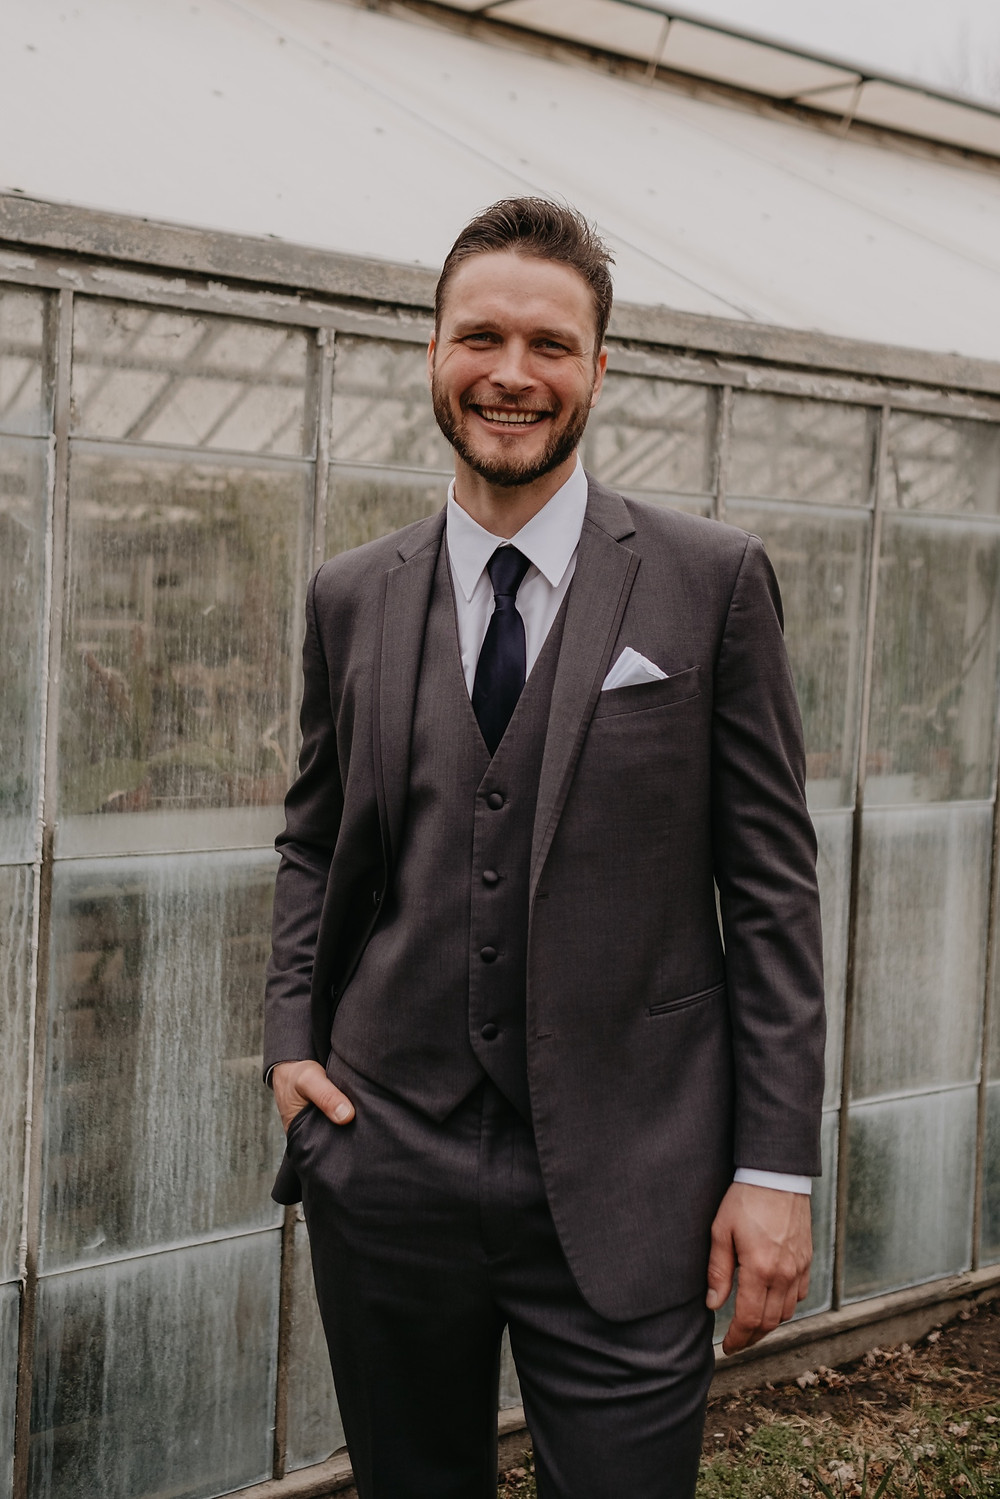 Groom at Graye's greenhouse. Photographed by Nicole Leanne Photography.